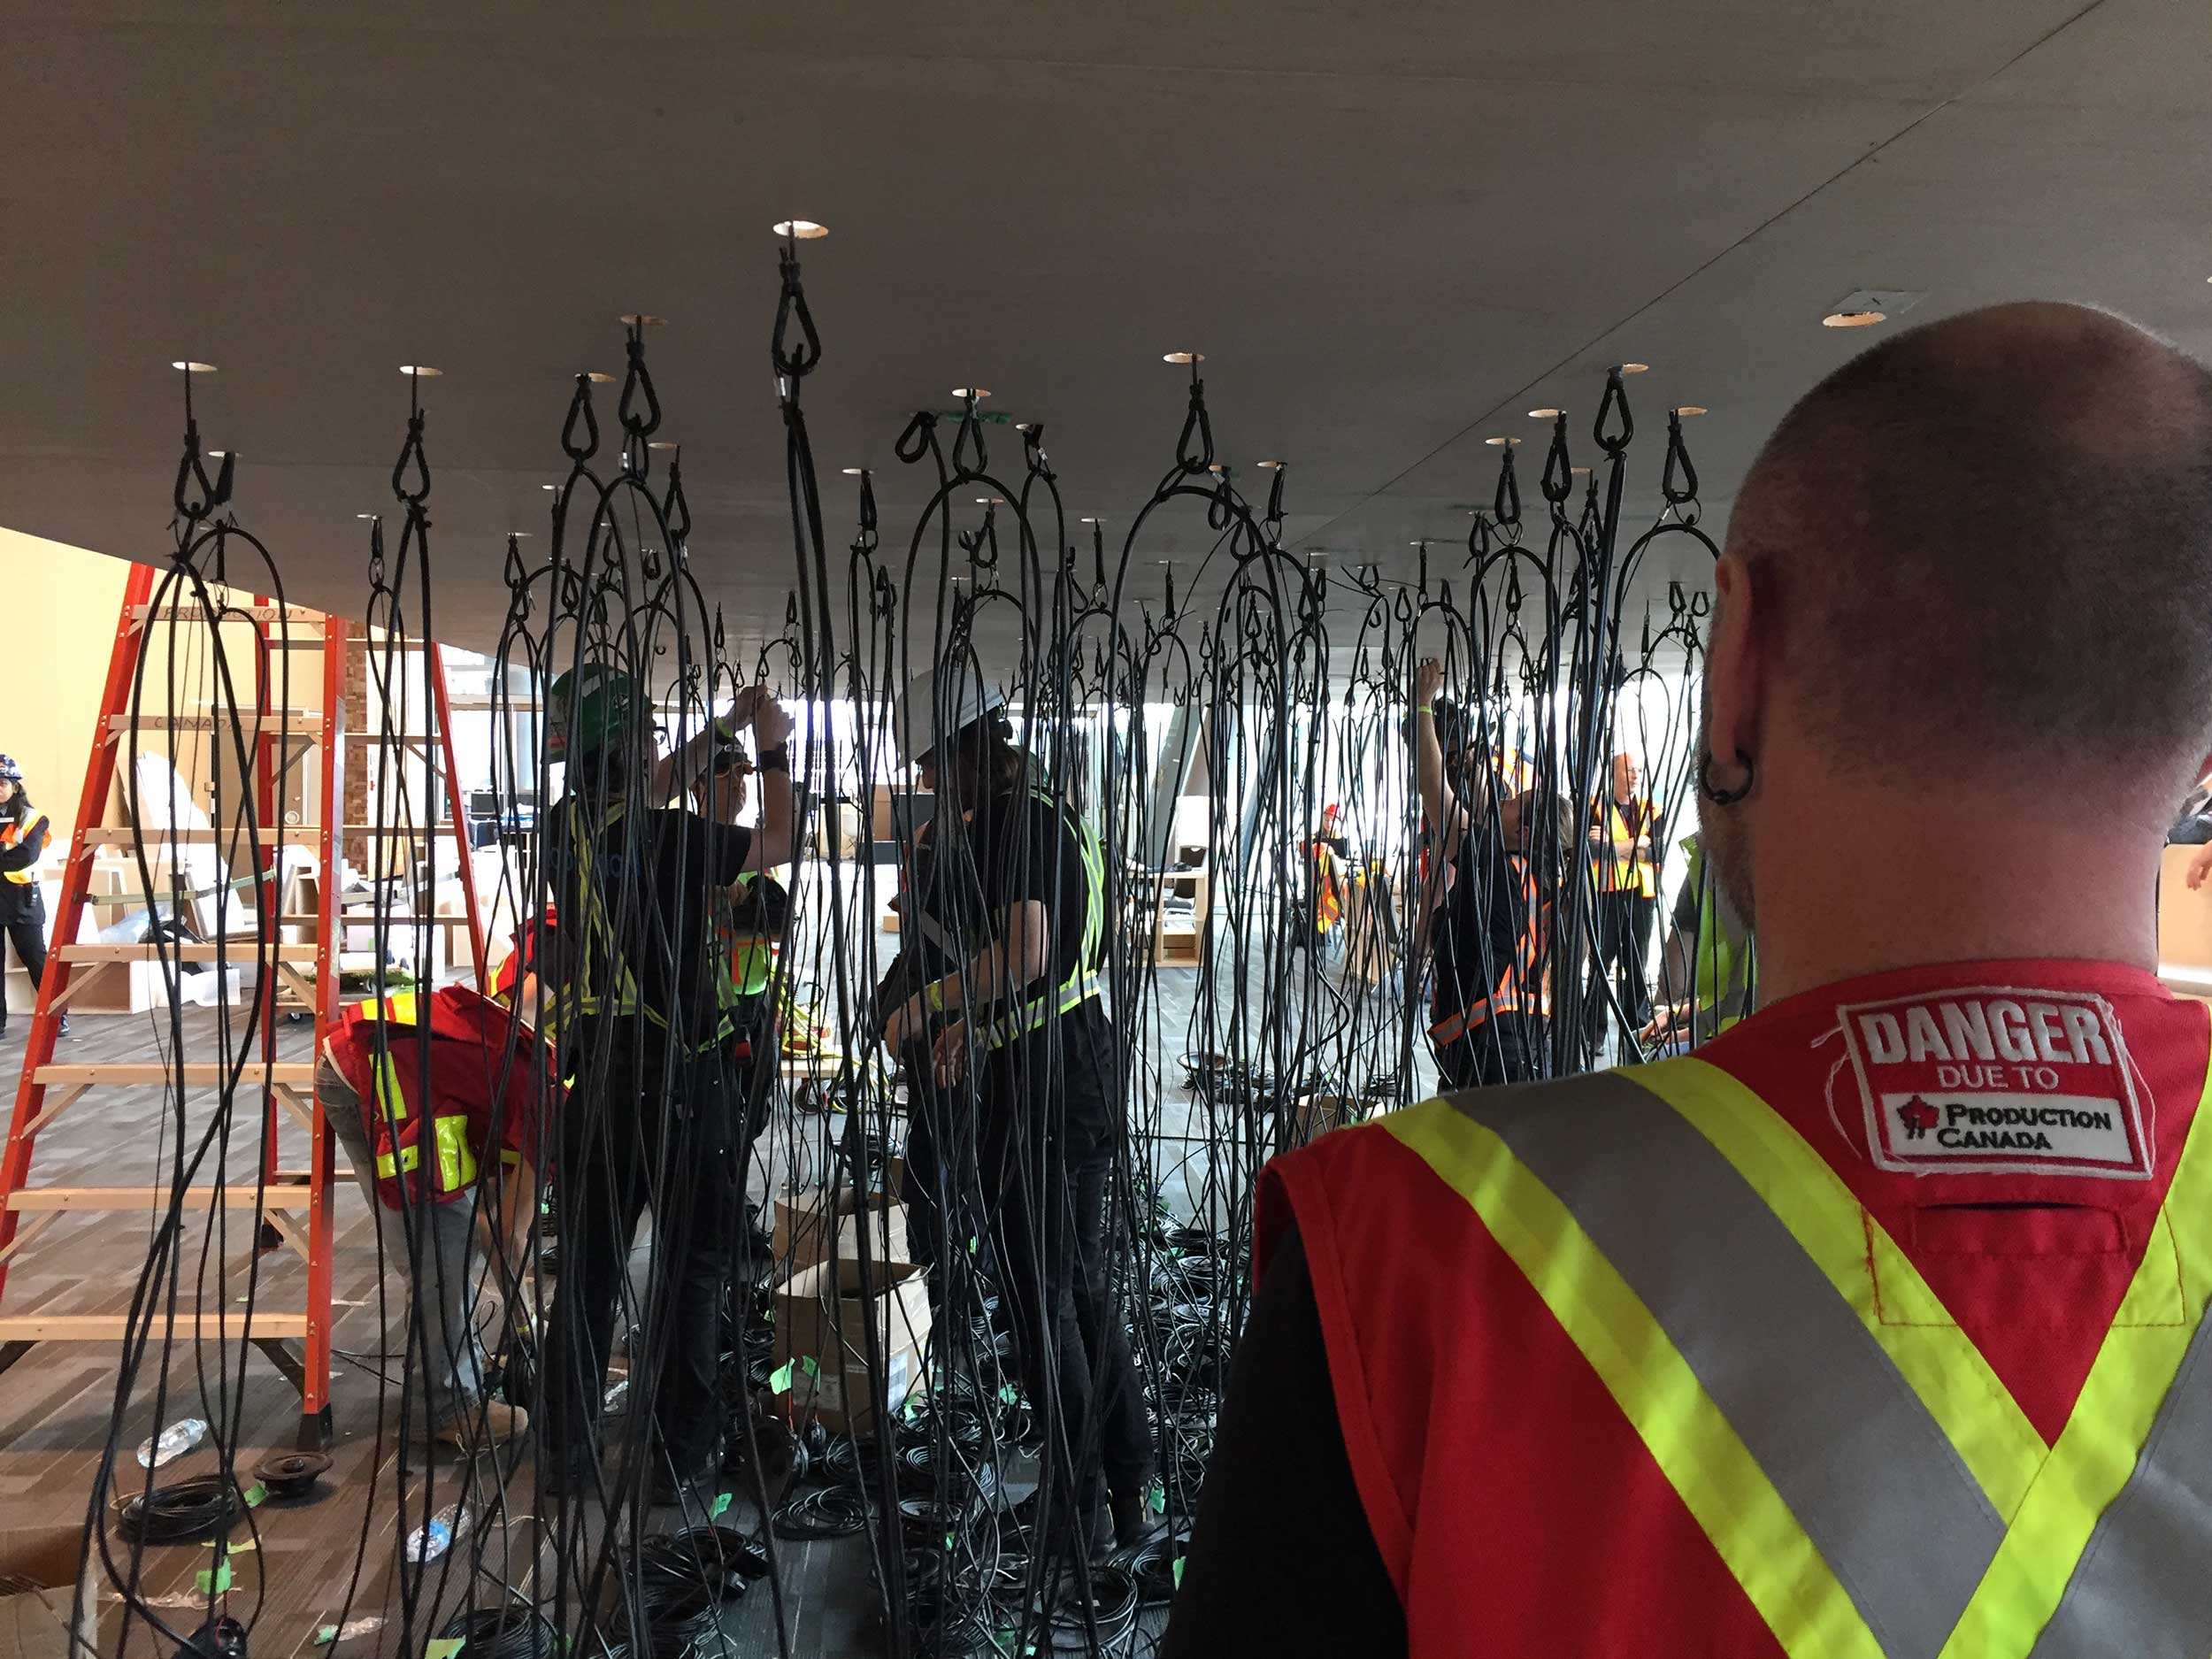 A supervisor looking at an art installation